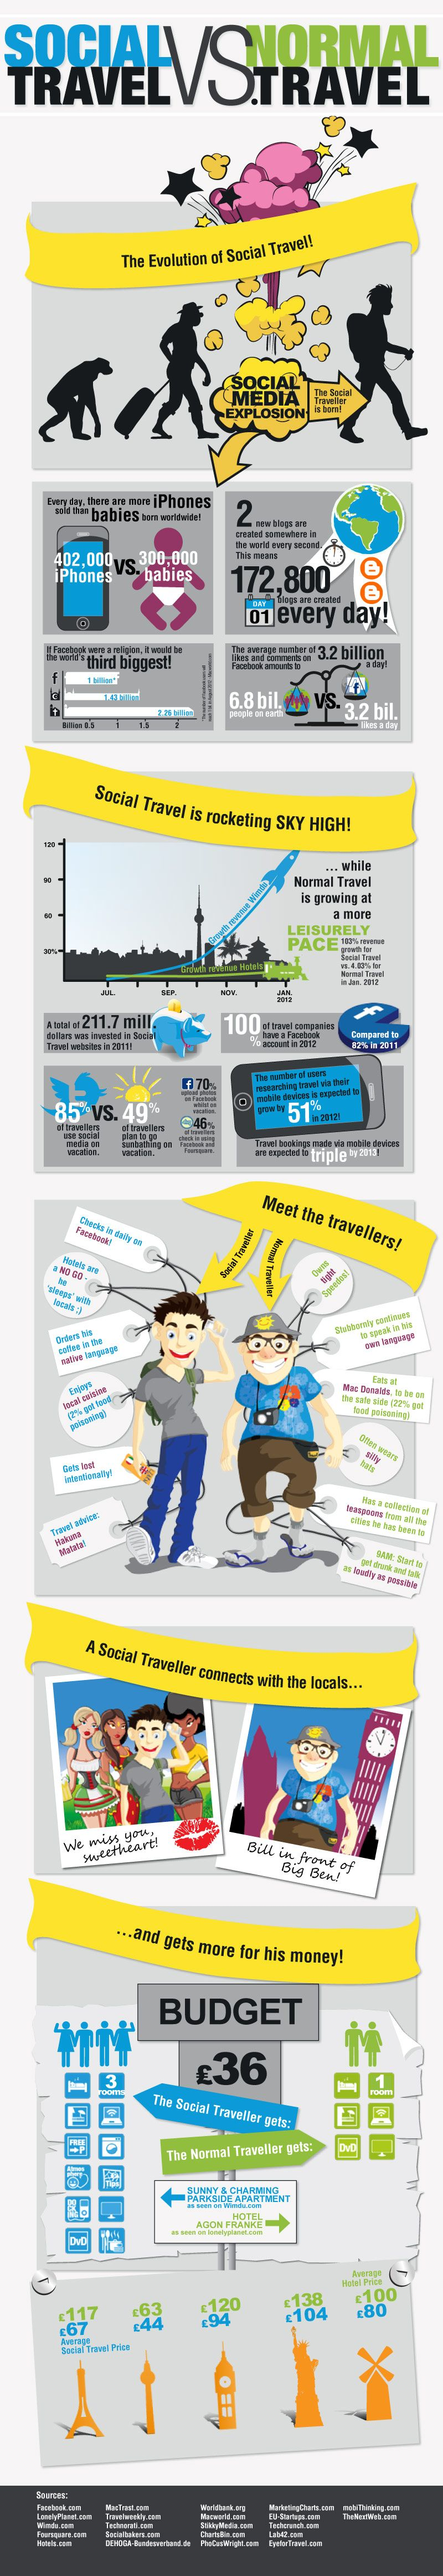 INFOGRAPHIC: SOCIAL TRAVELLER VS. NORMAL TRAVELLER – WHICH ONE ARE YOU?